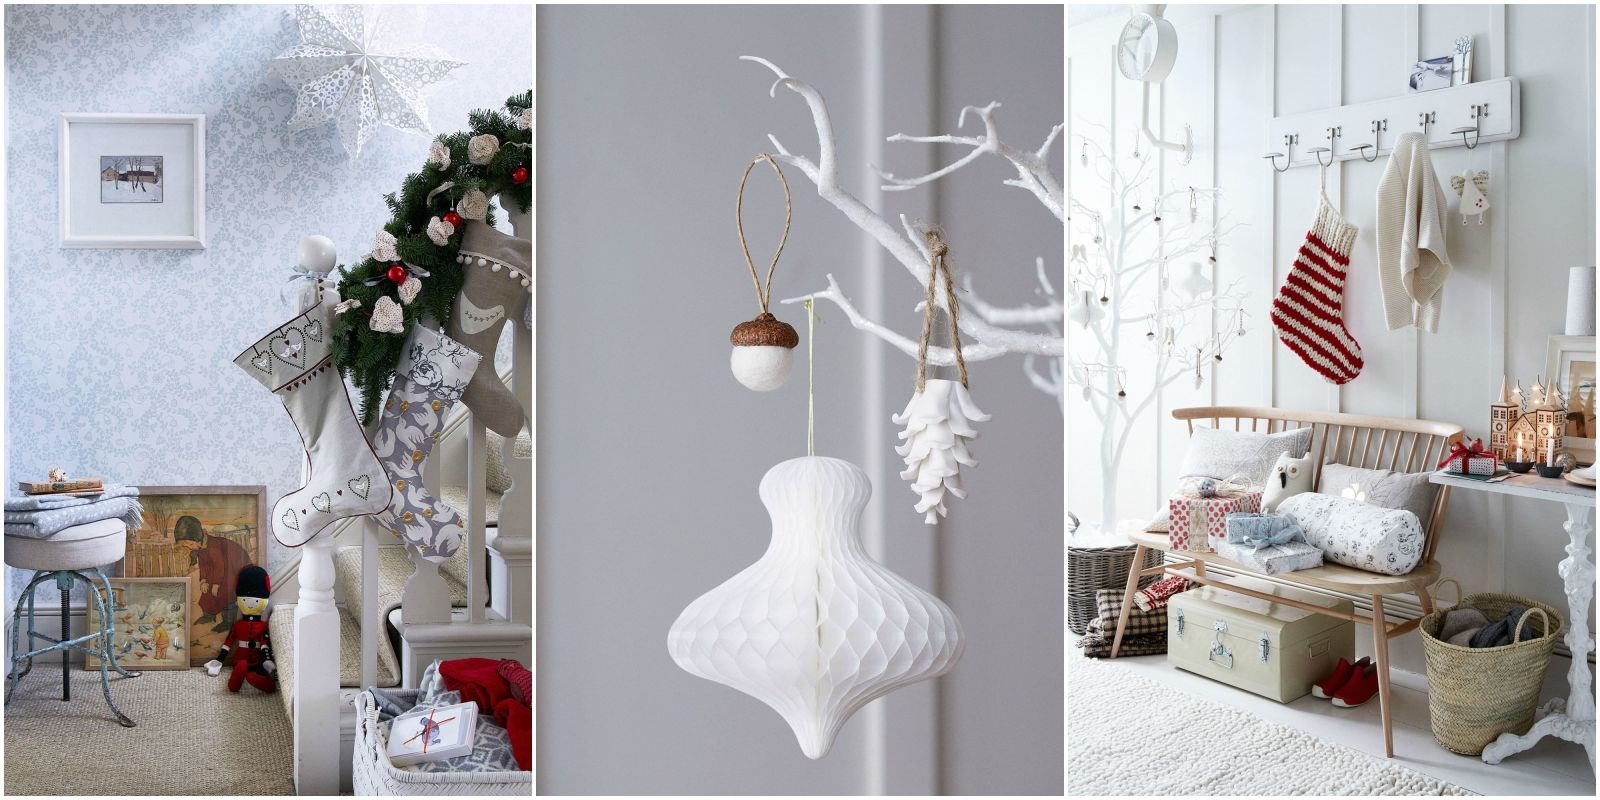 8 ways to decorate your home with white this Christmas   best white     8 ways to decorate your home with white this Christmas   best white  Christmas decorations